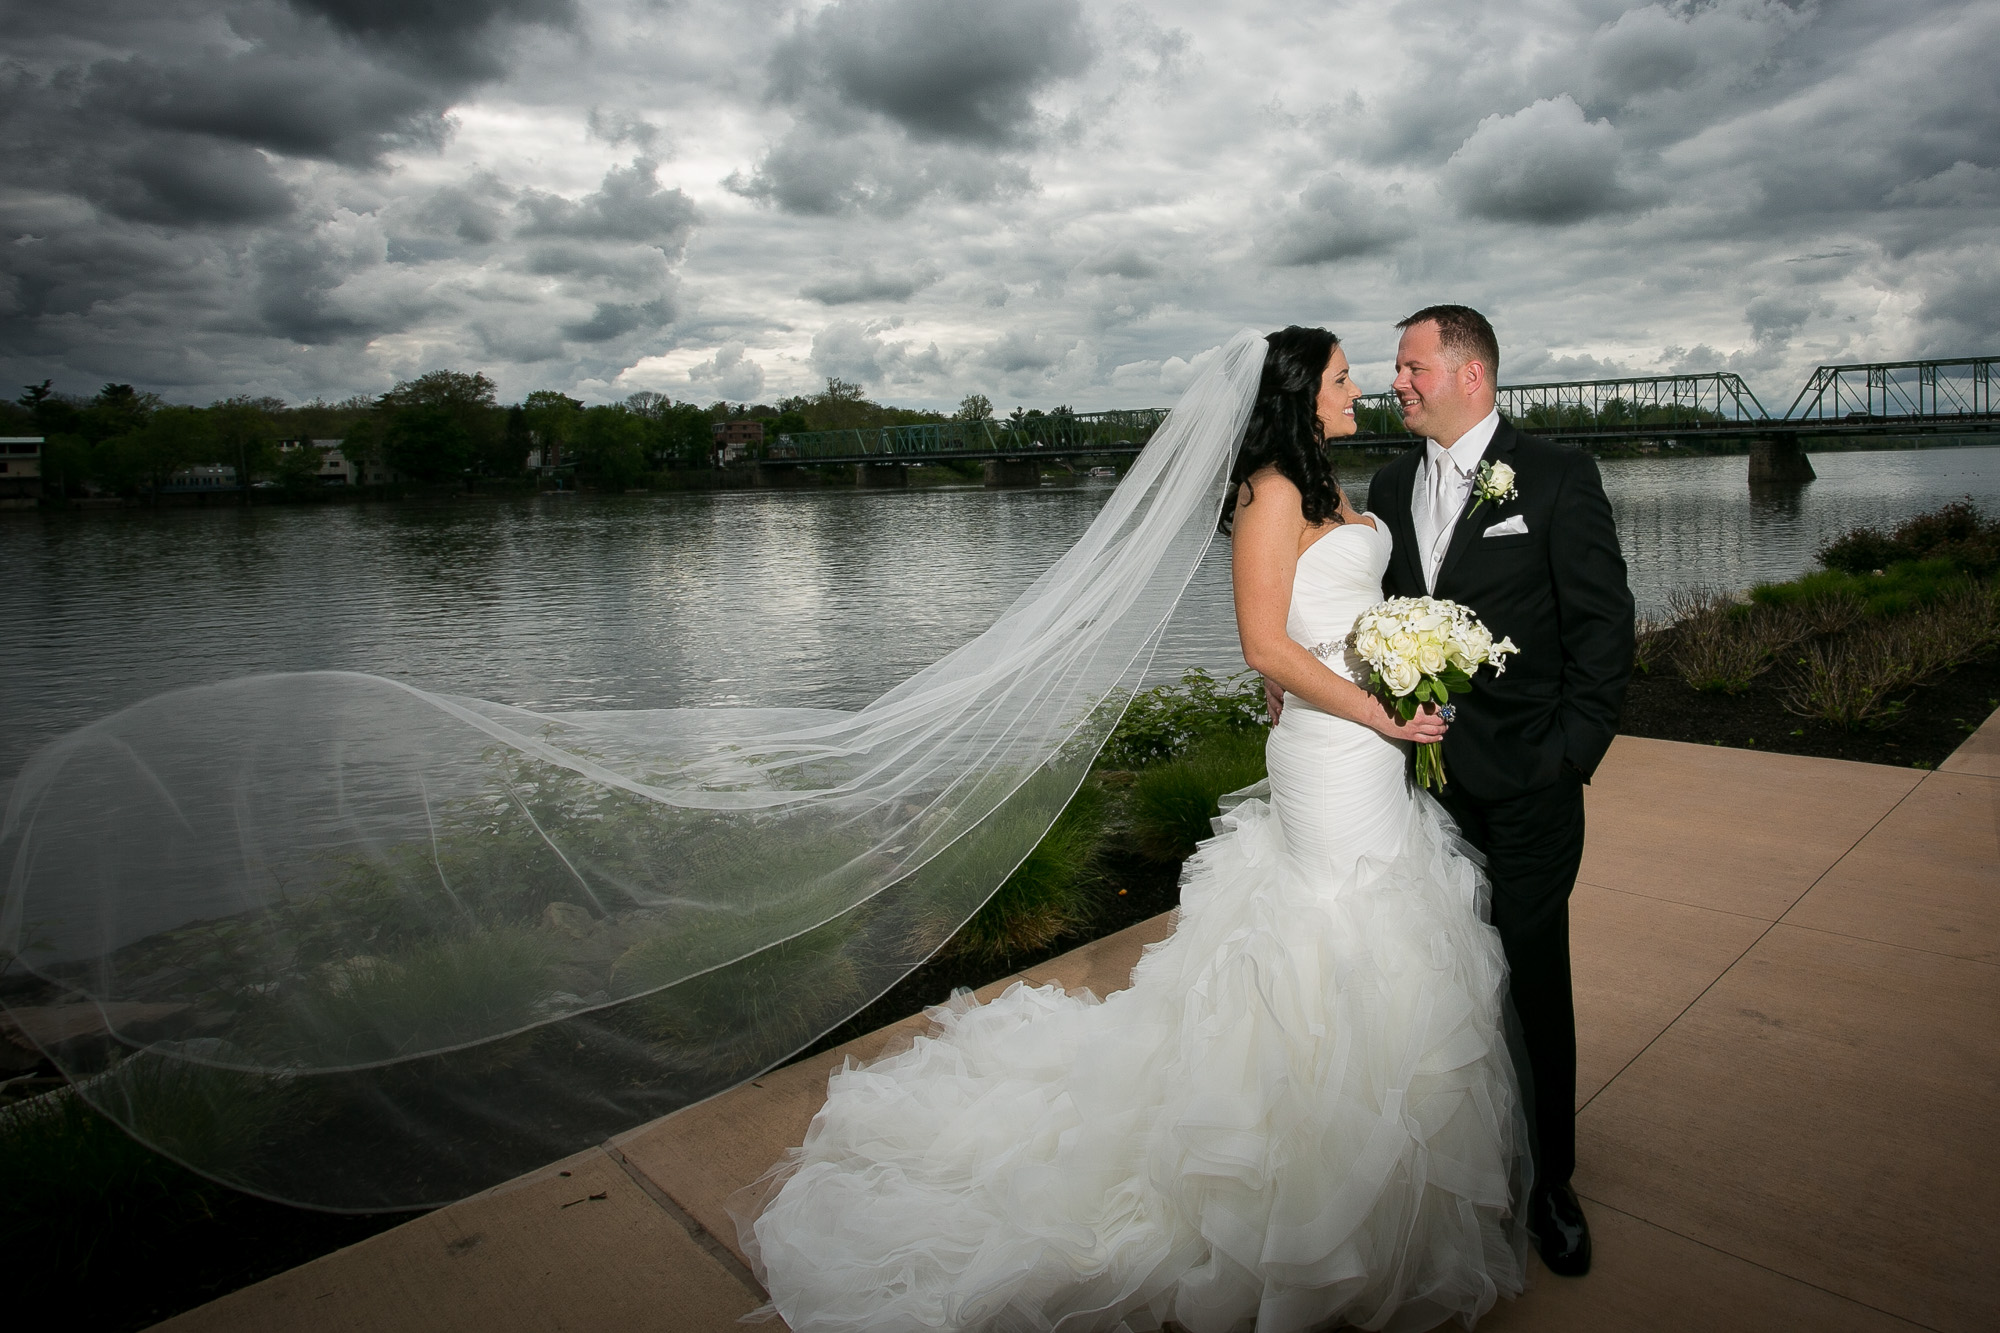 Delaware Riverside Wedding Photographer NJ - Jenna Perfette Photography